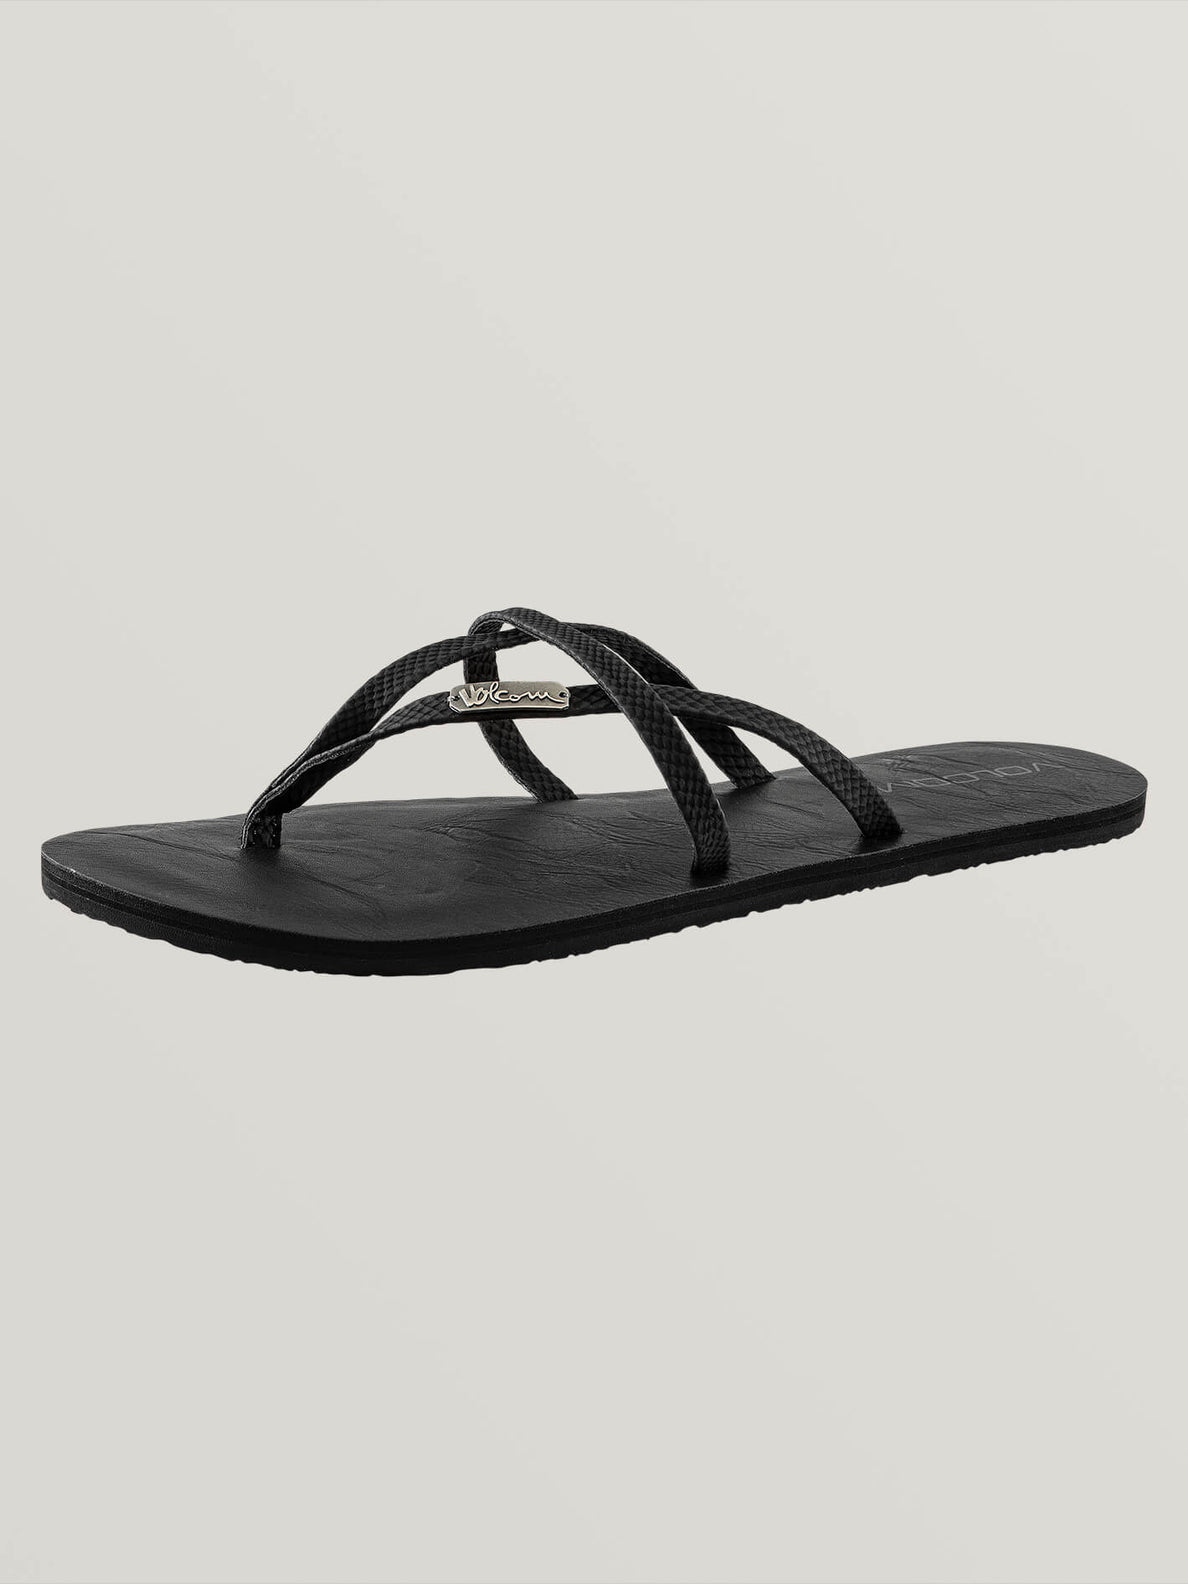 All Night Long Sandals In Sulfur Black, Back View